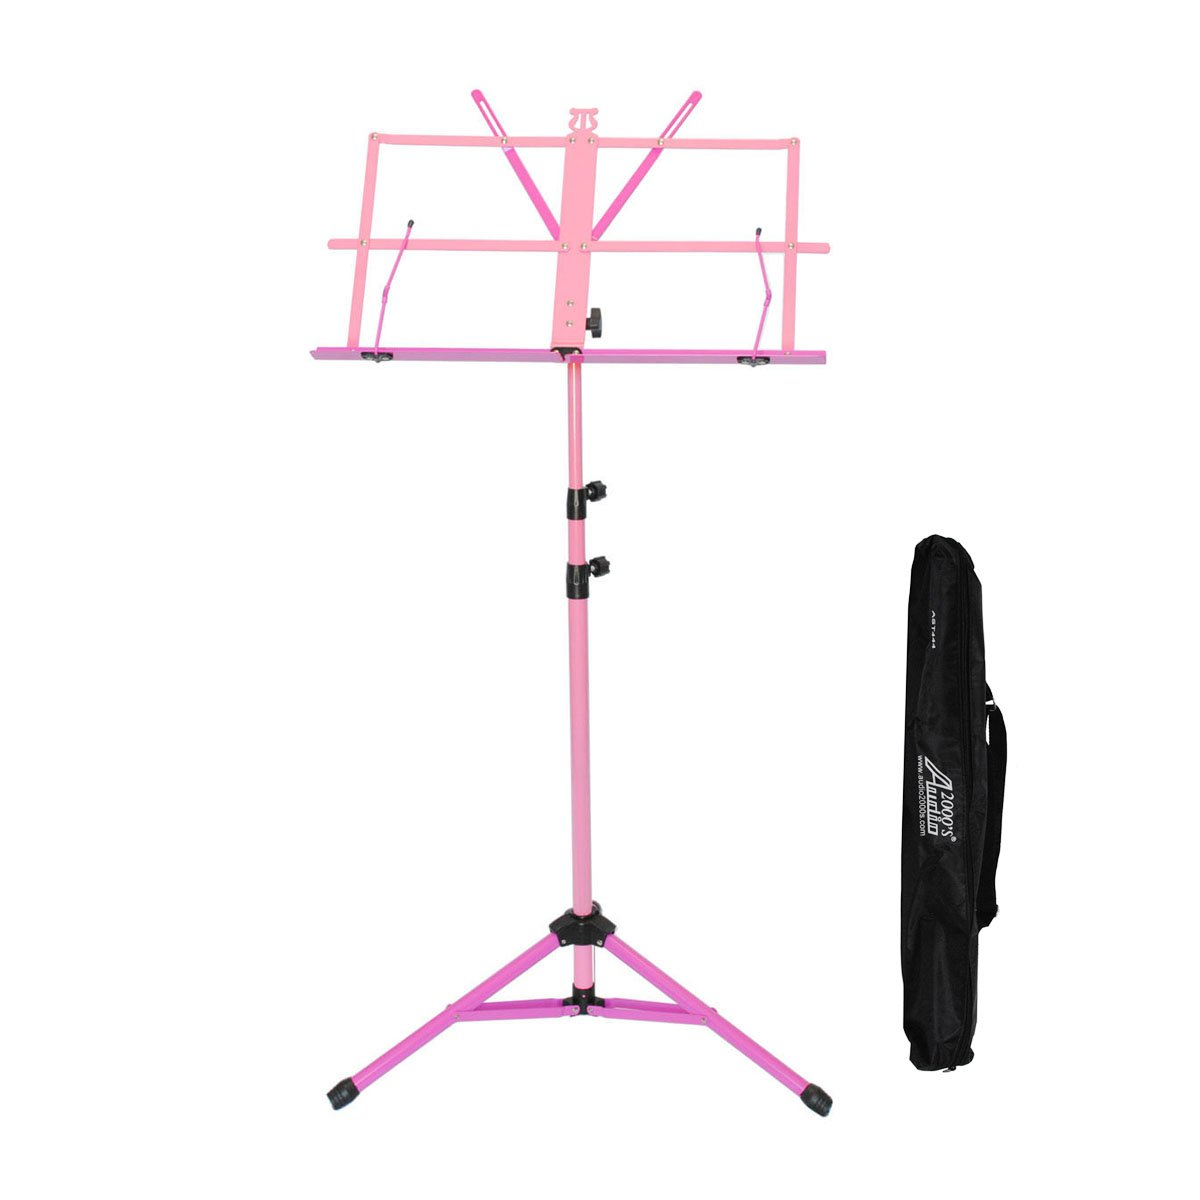 Audio 2000s 60'' Height Portable Sheet Music Stand Pink/Magenta AST4448